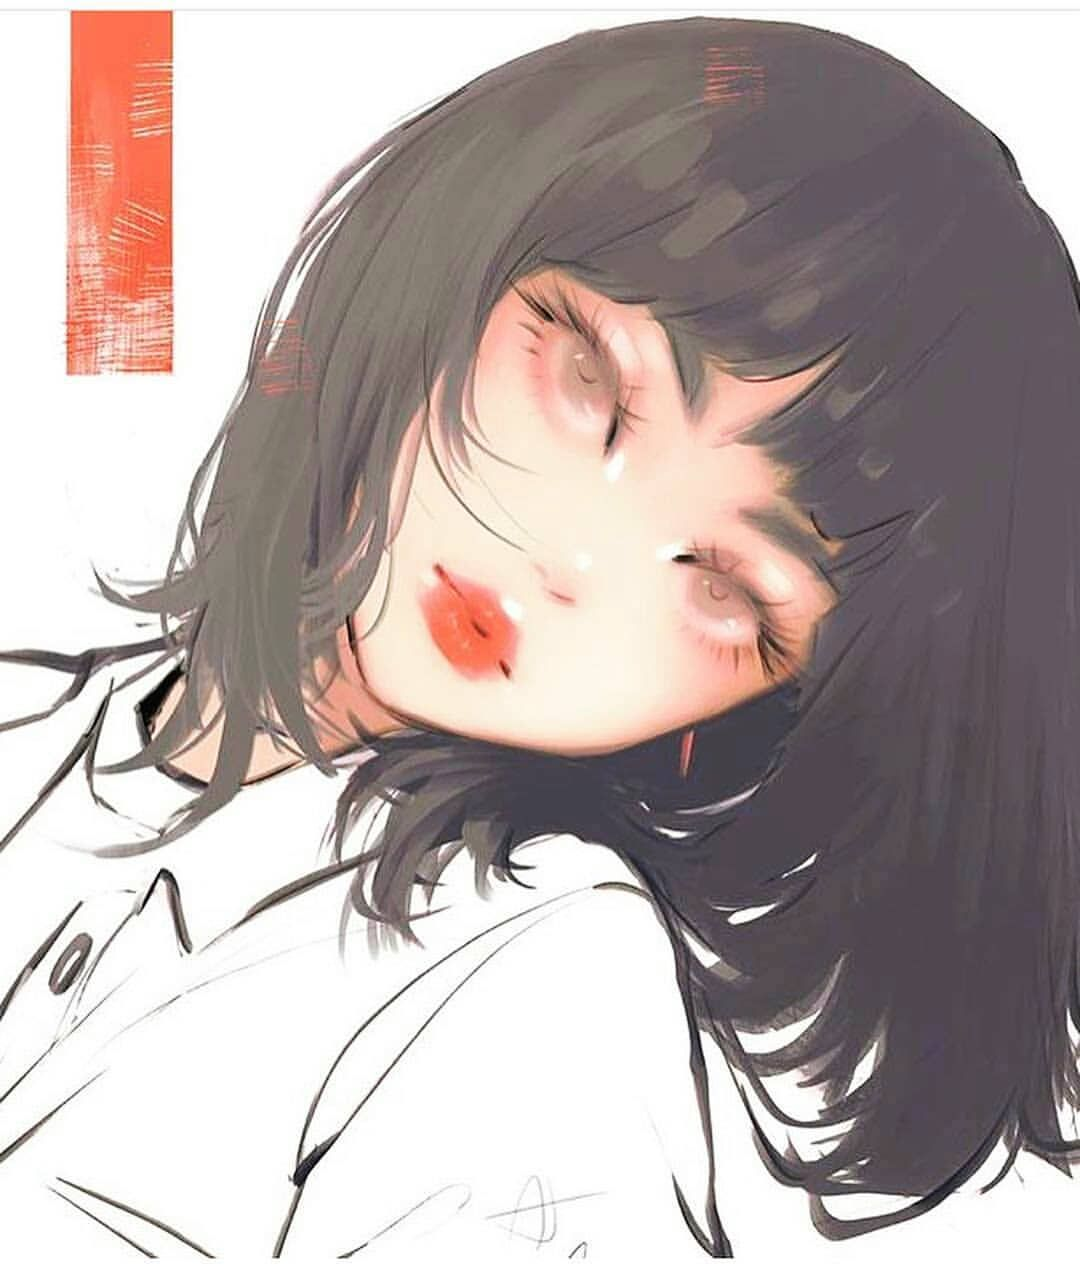 Daily Art Featuring 90k Pa Instagram Comment Your Favorite 1 10 Follow Us Hikkie For More Tag Your Frie Anime Art Girl Anime Art Digital Art Girl